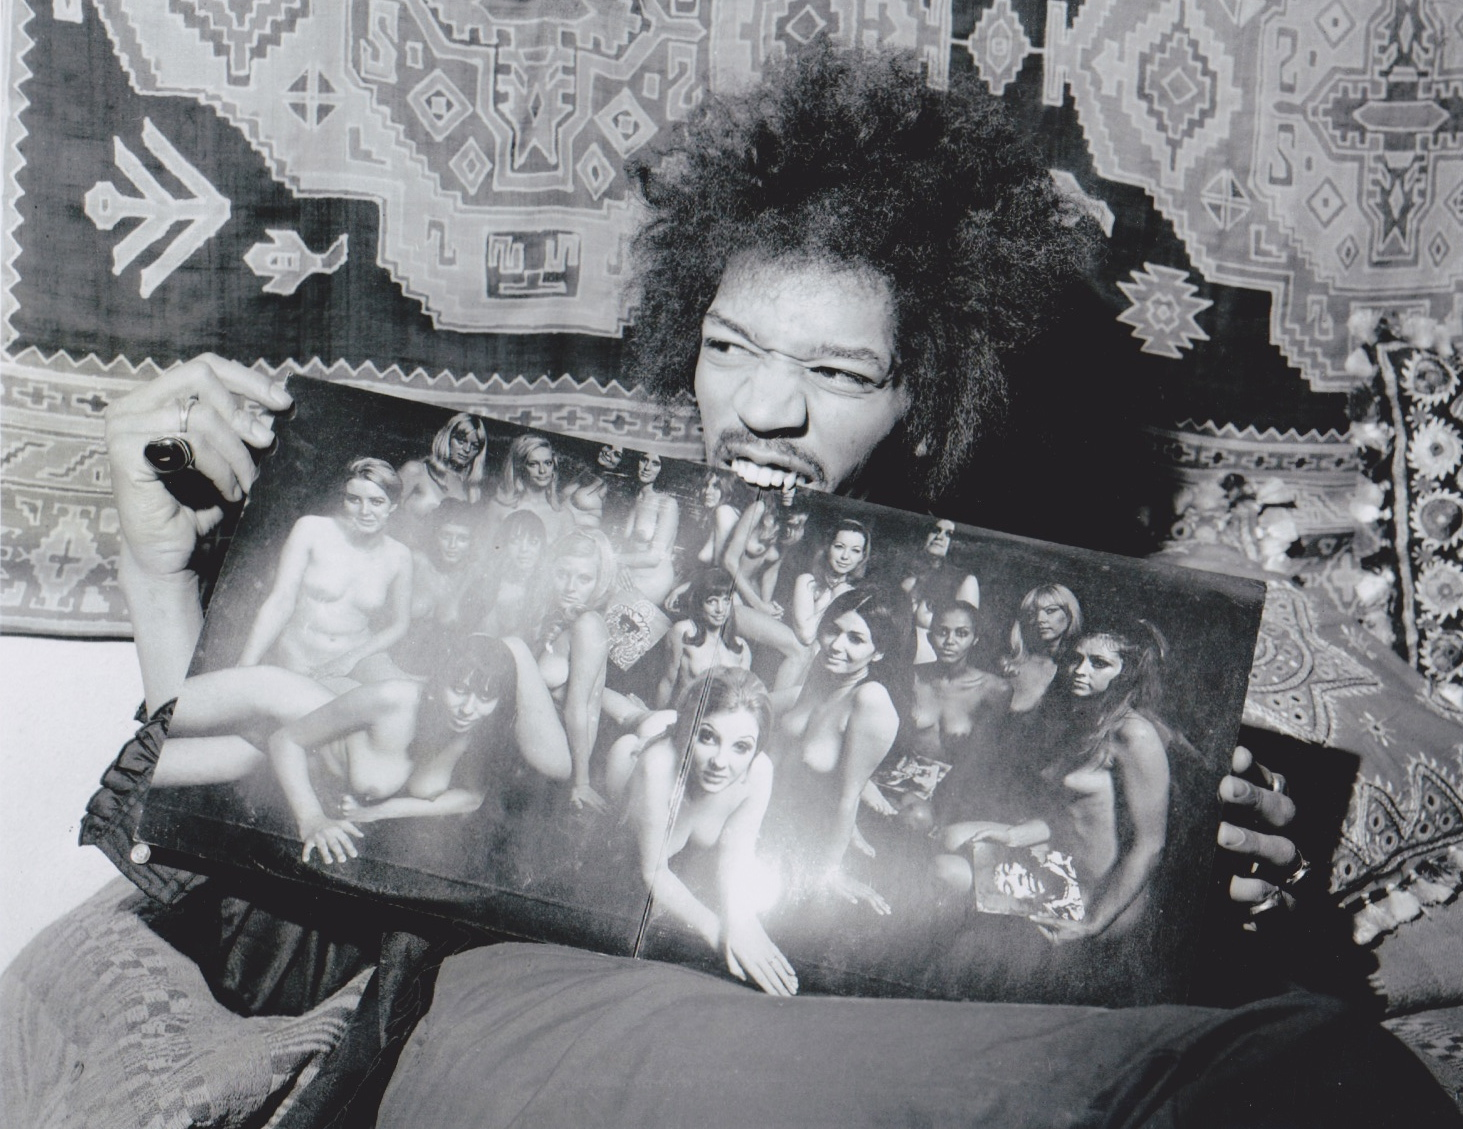 jimihendrixs-electric-ladyland-album